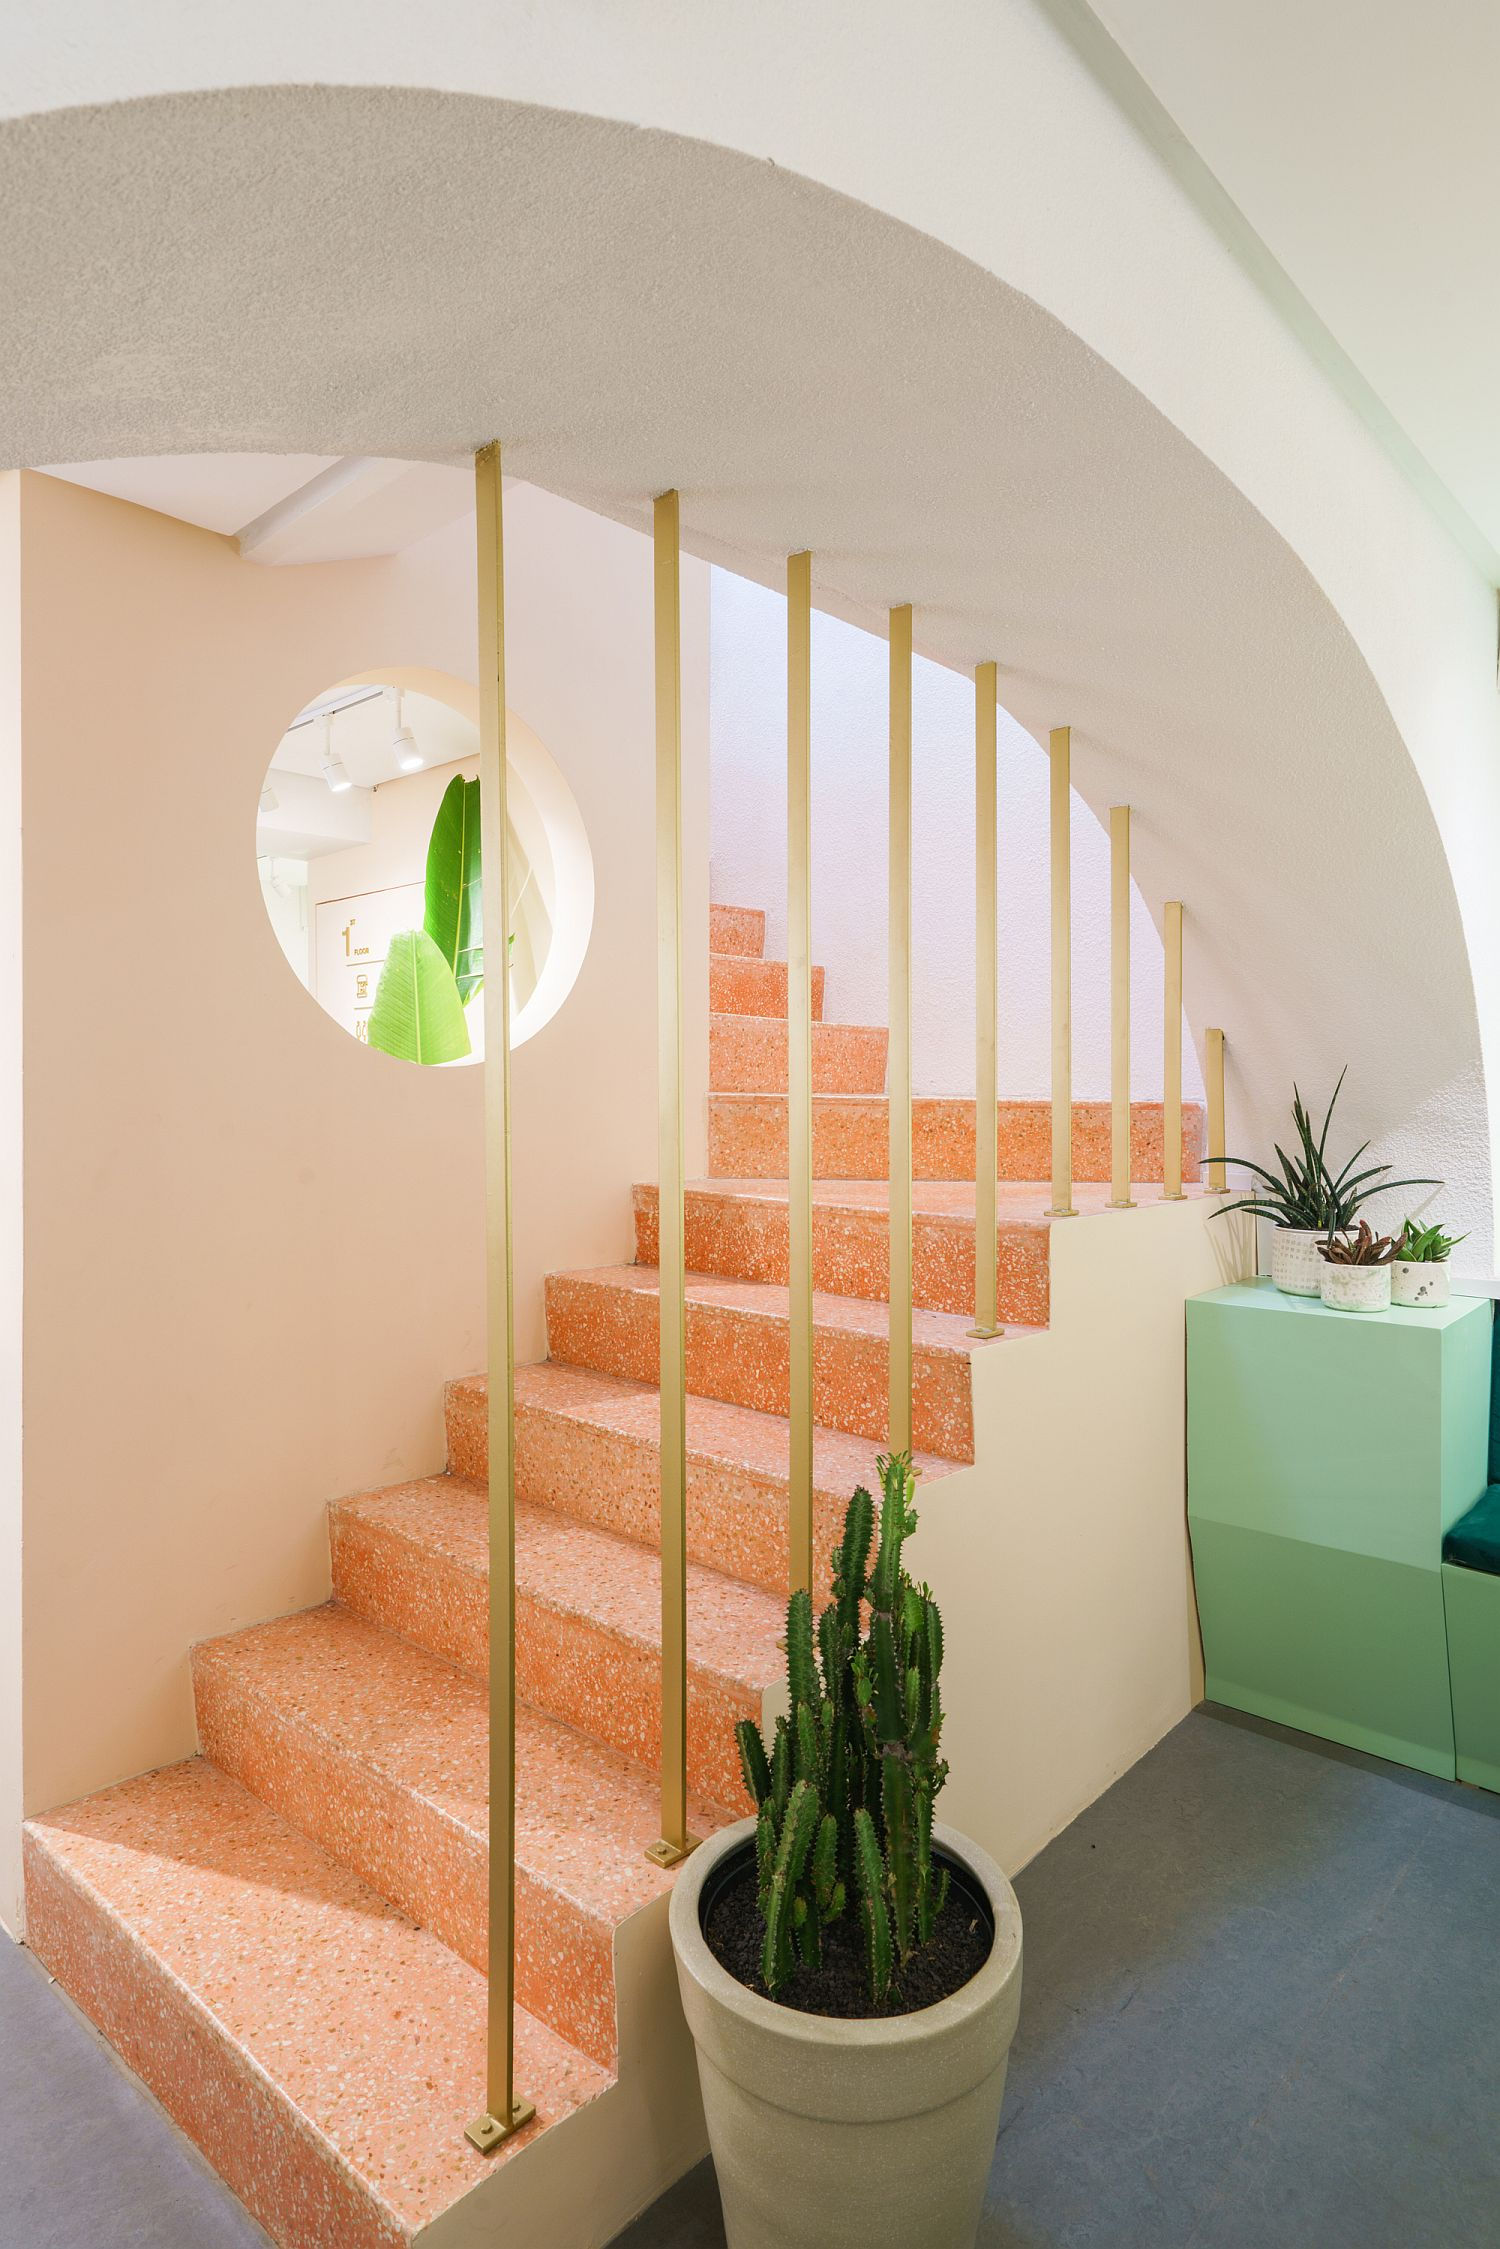 Pastel green and orange add brightness to the cafe interior